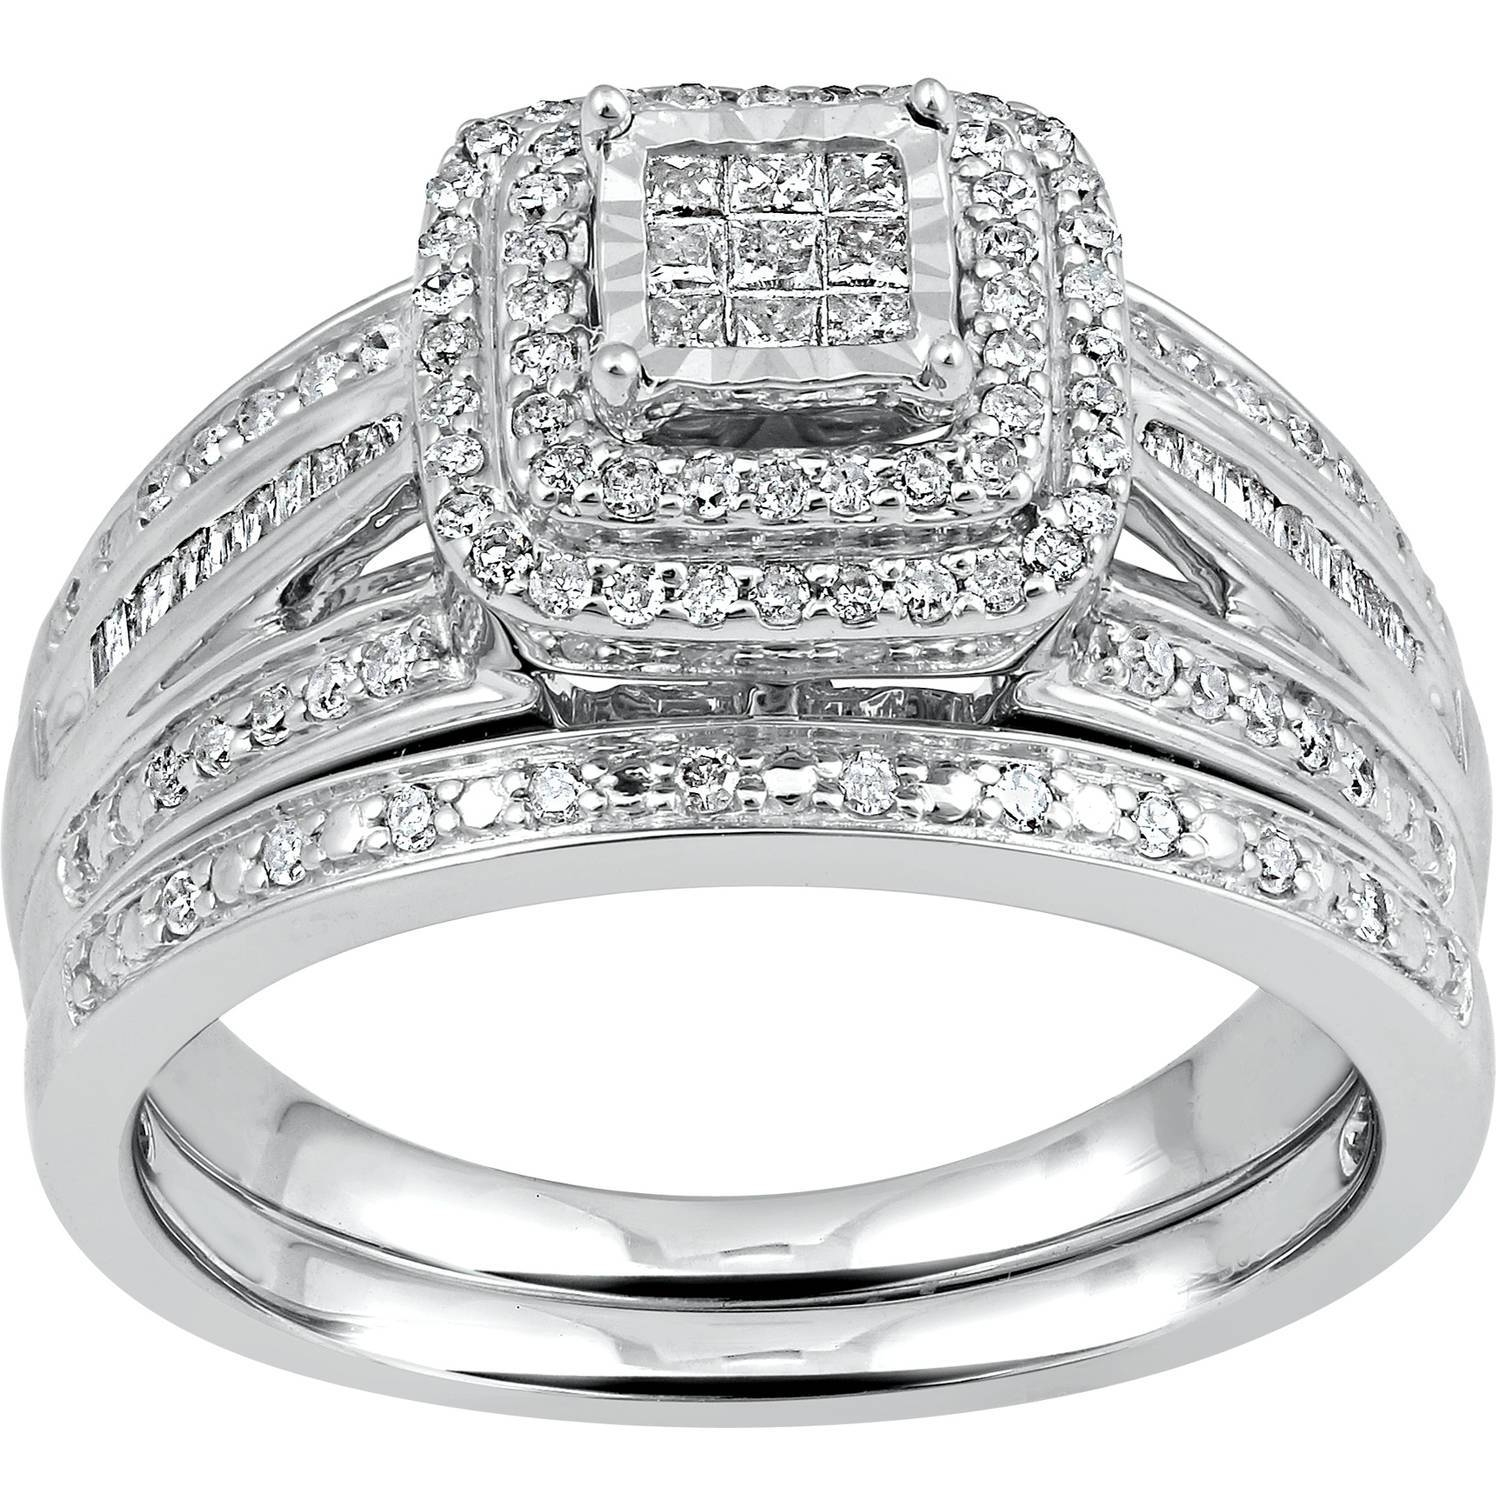 Forever Bride Diamond Accent Sterling Silver Wedding Band With Walmart Women's Wedding Bands (View 8 of 15)